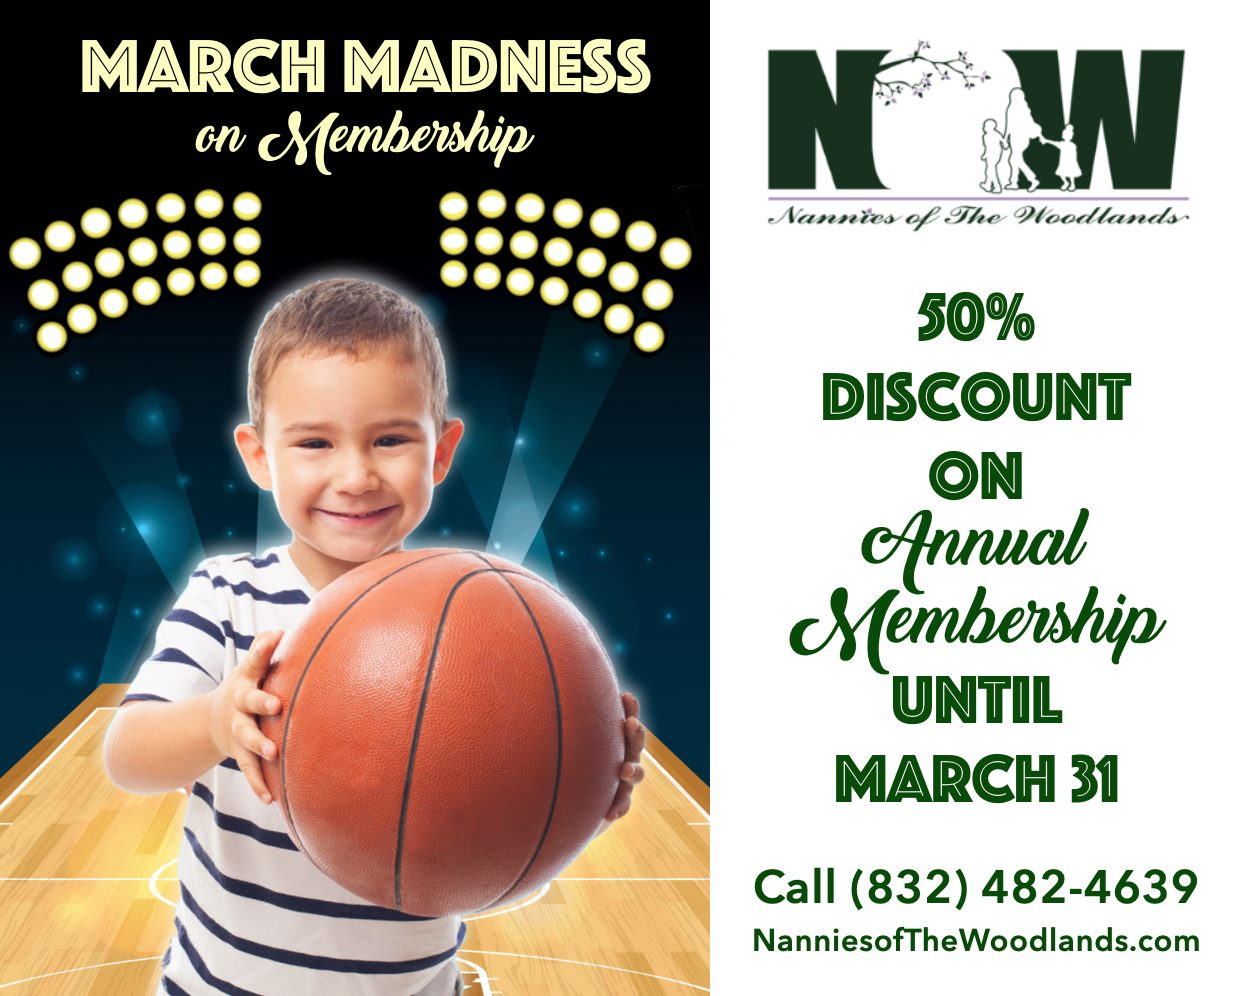 Nannies of The Woodlands March Madness Discount